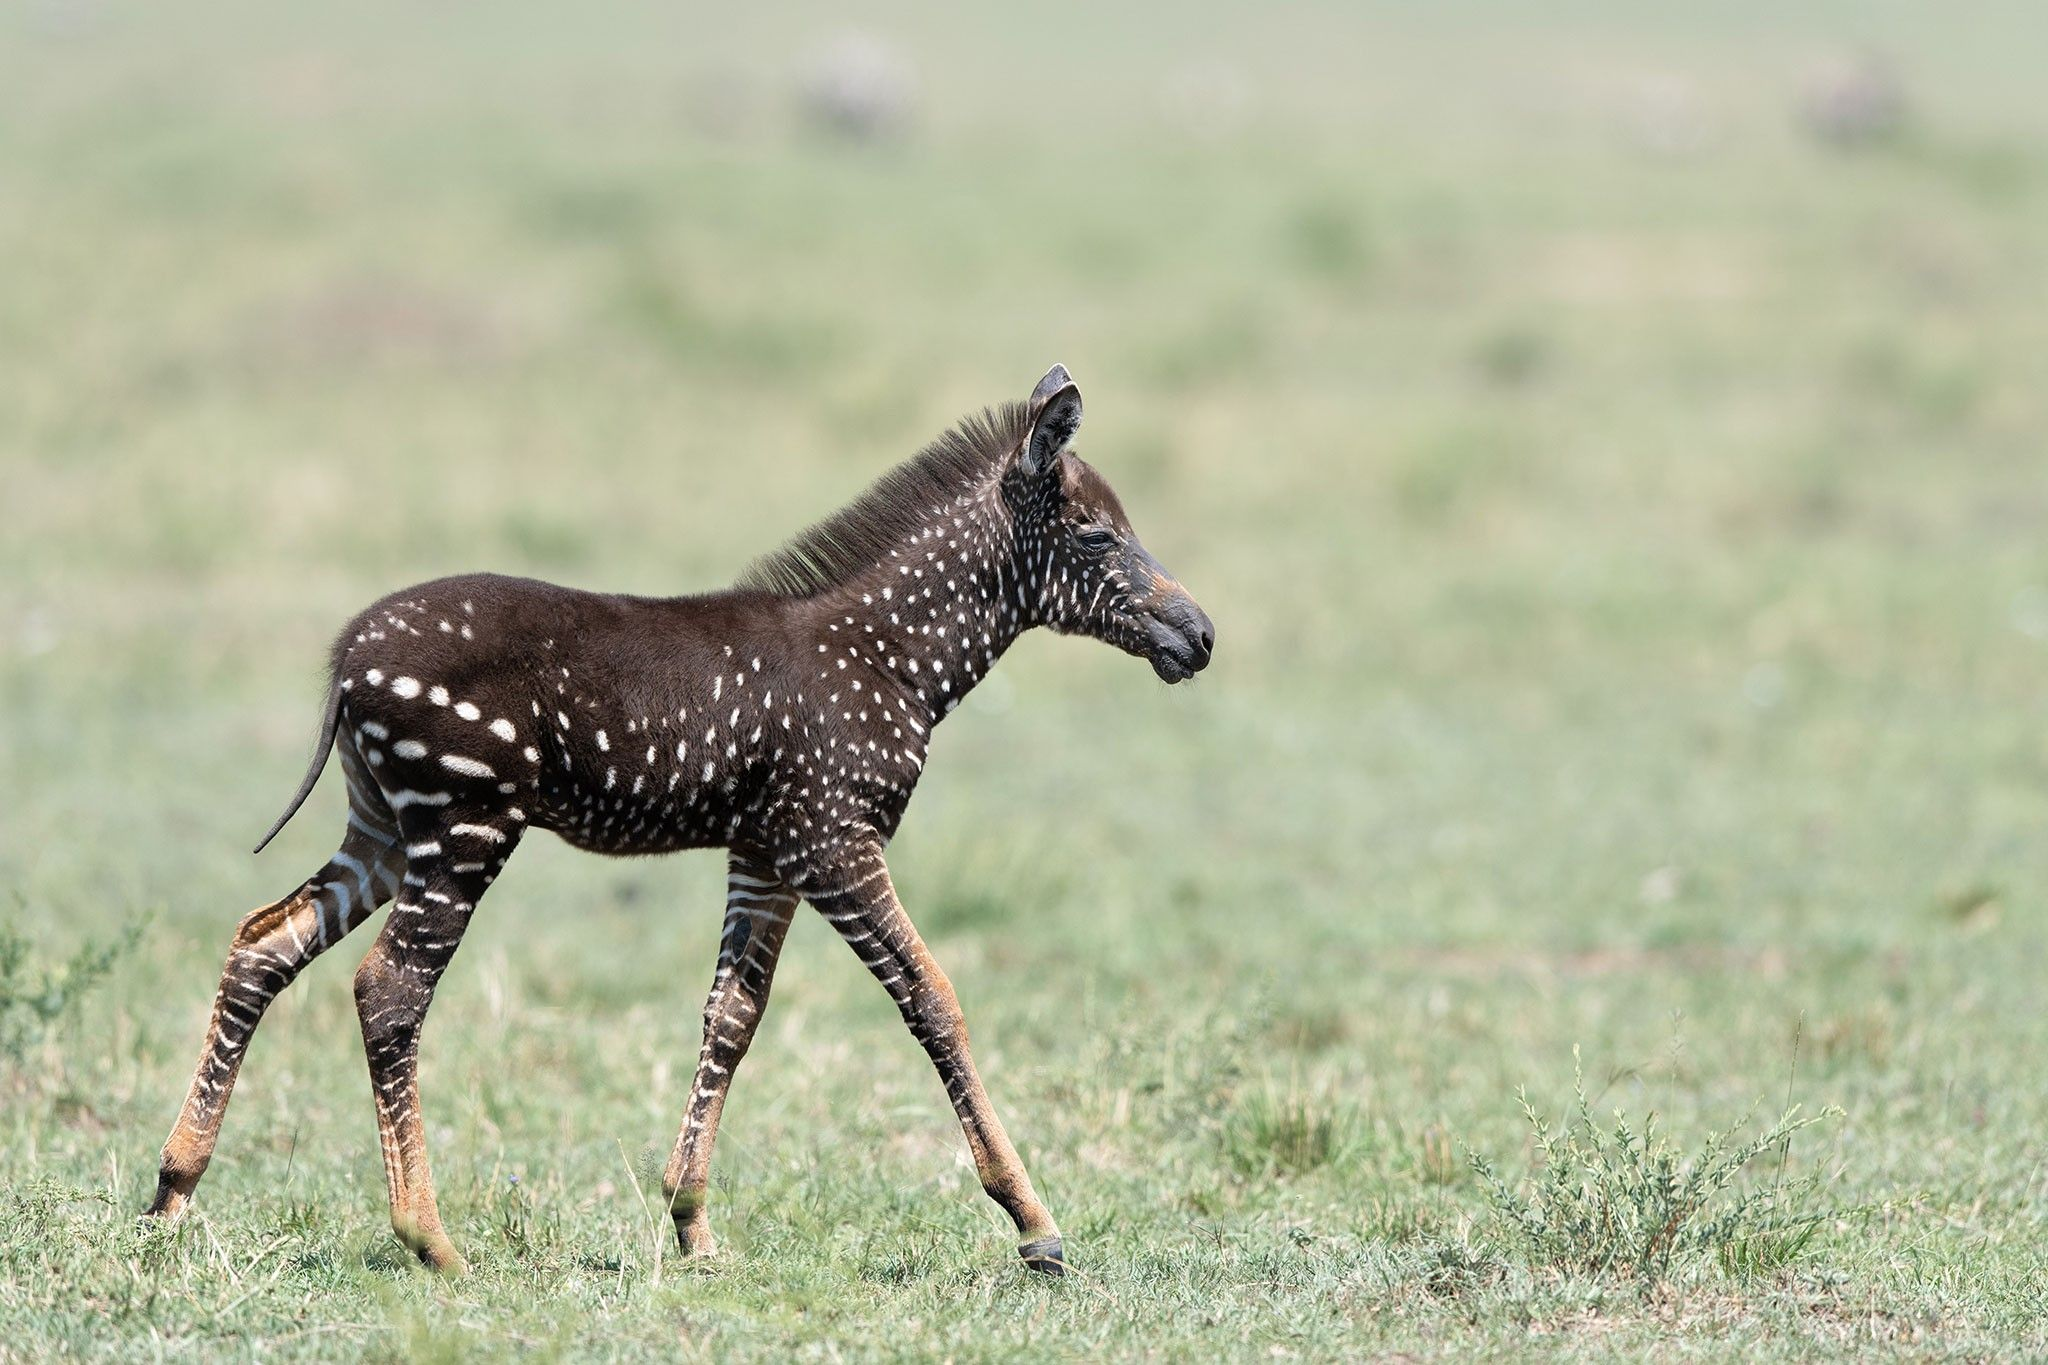 Rare polka-dotted zebra foal photographed in Kenya | National Geographic